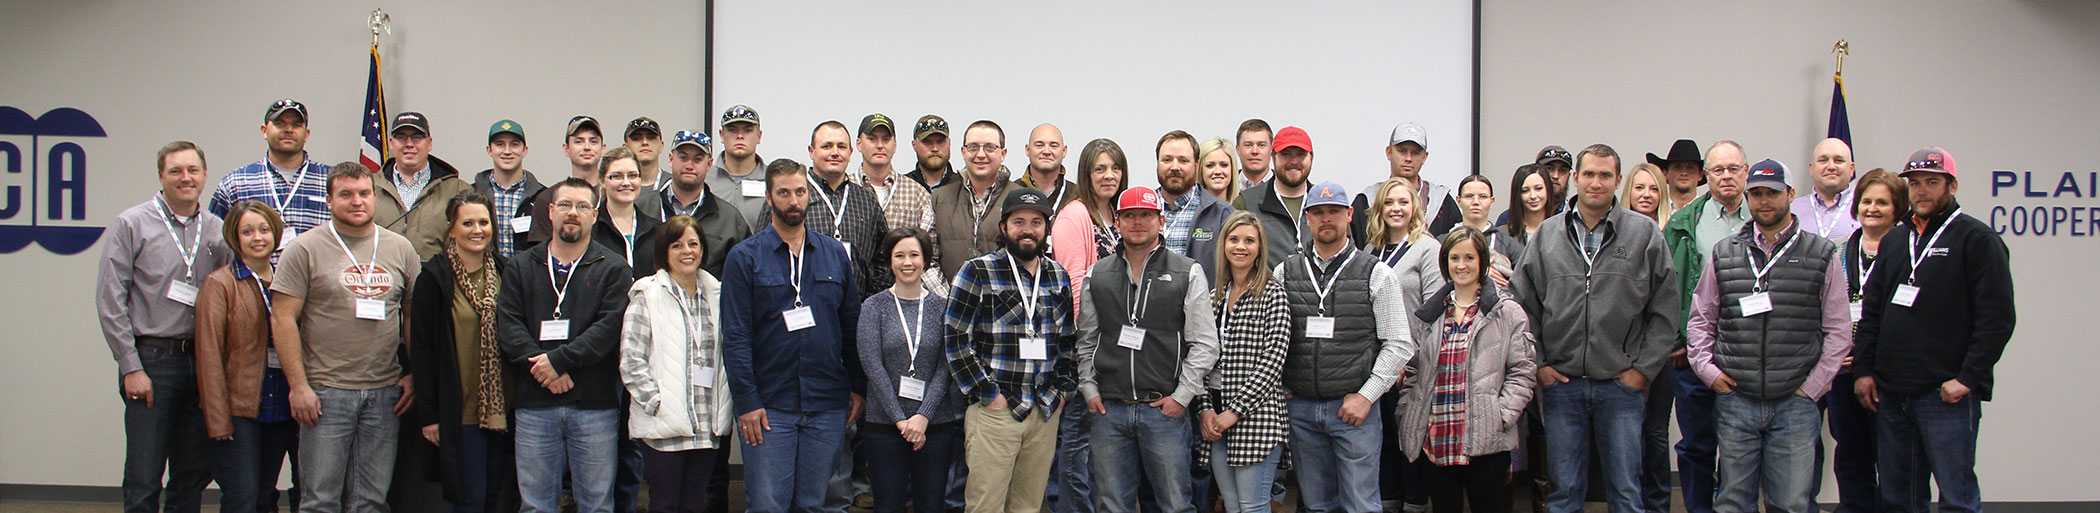 2017 Cooperative Producer Orientation group photo